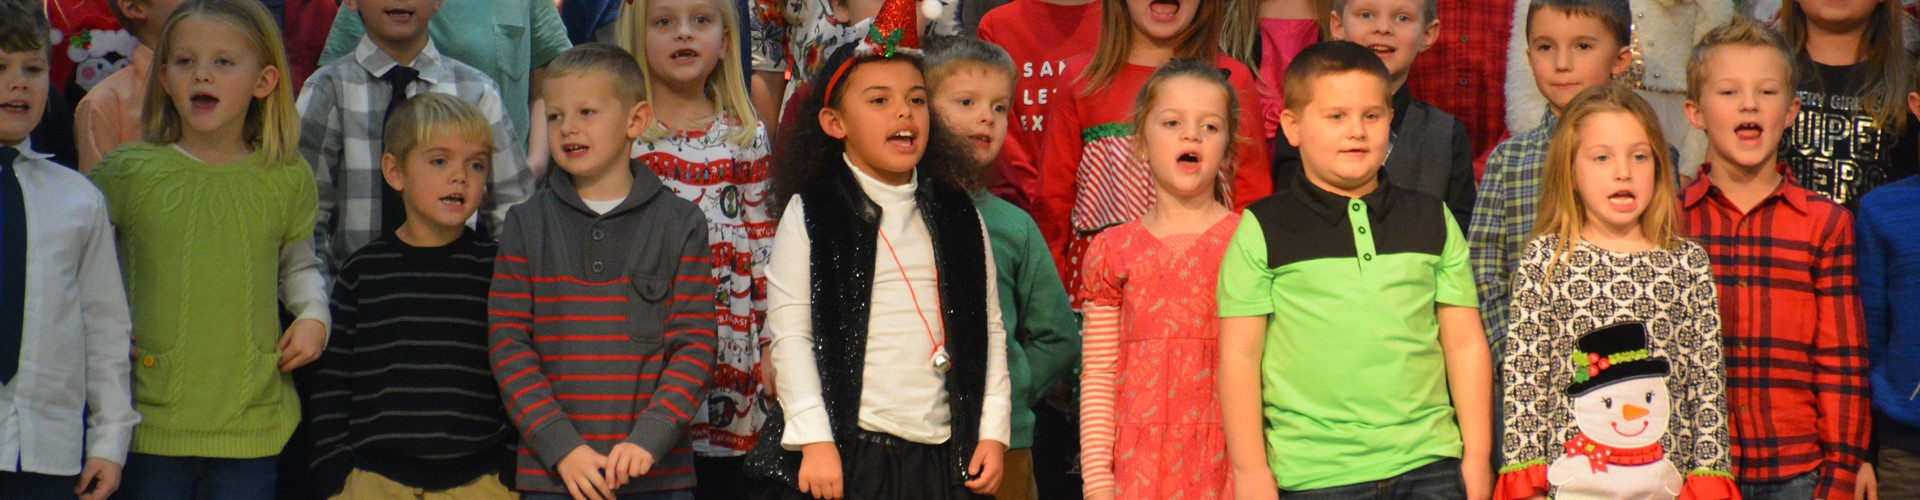 Sugar Creek Elementary choir during a holiday performance